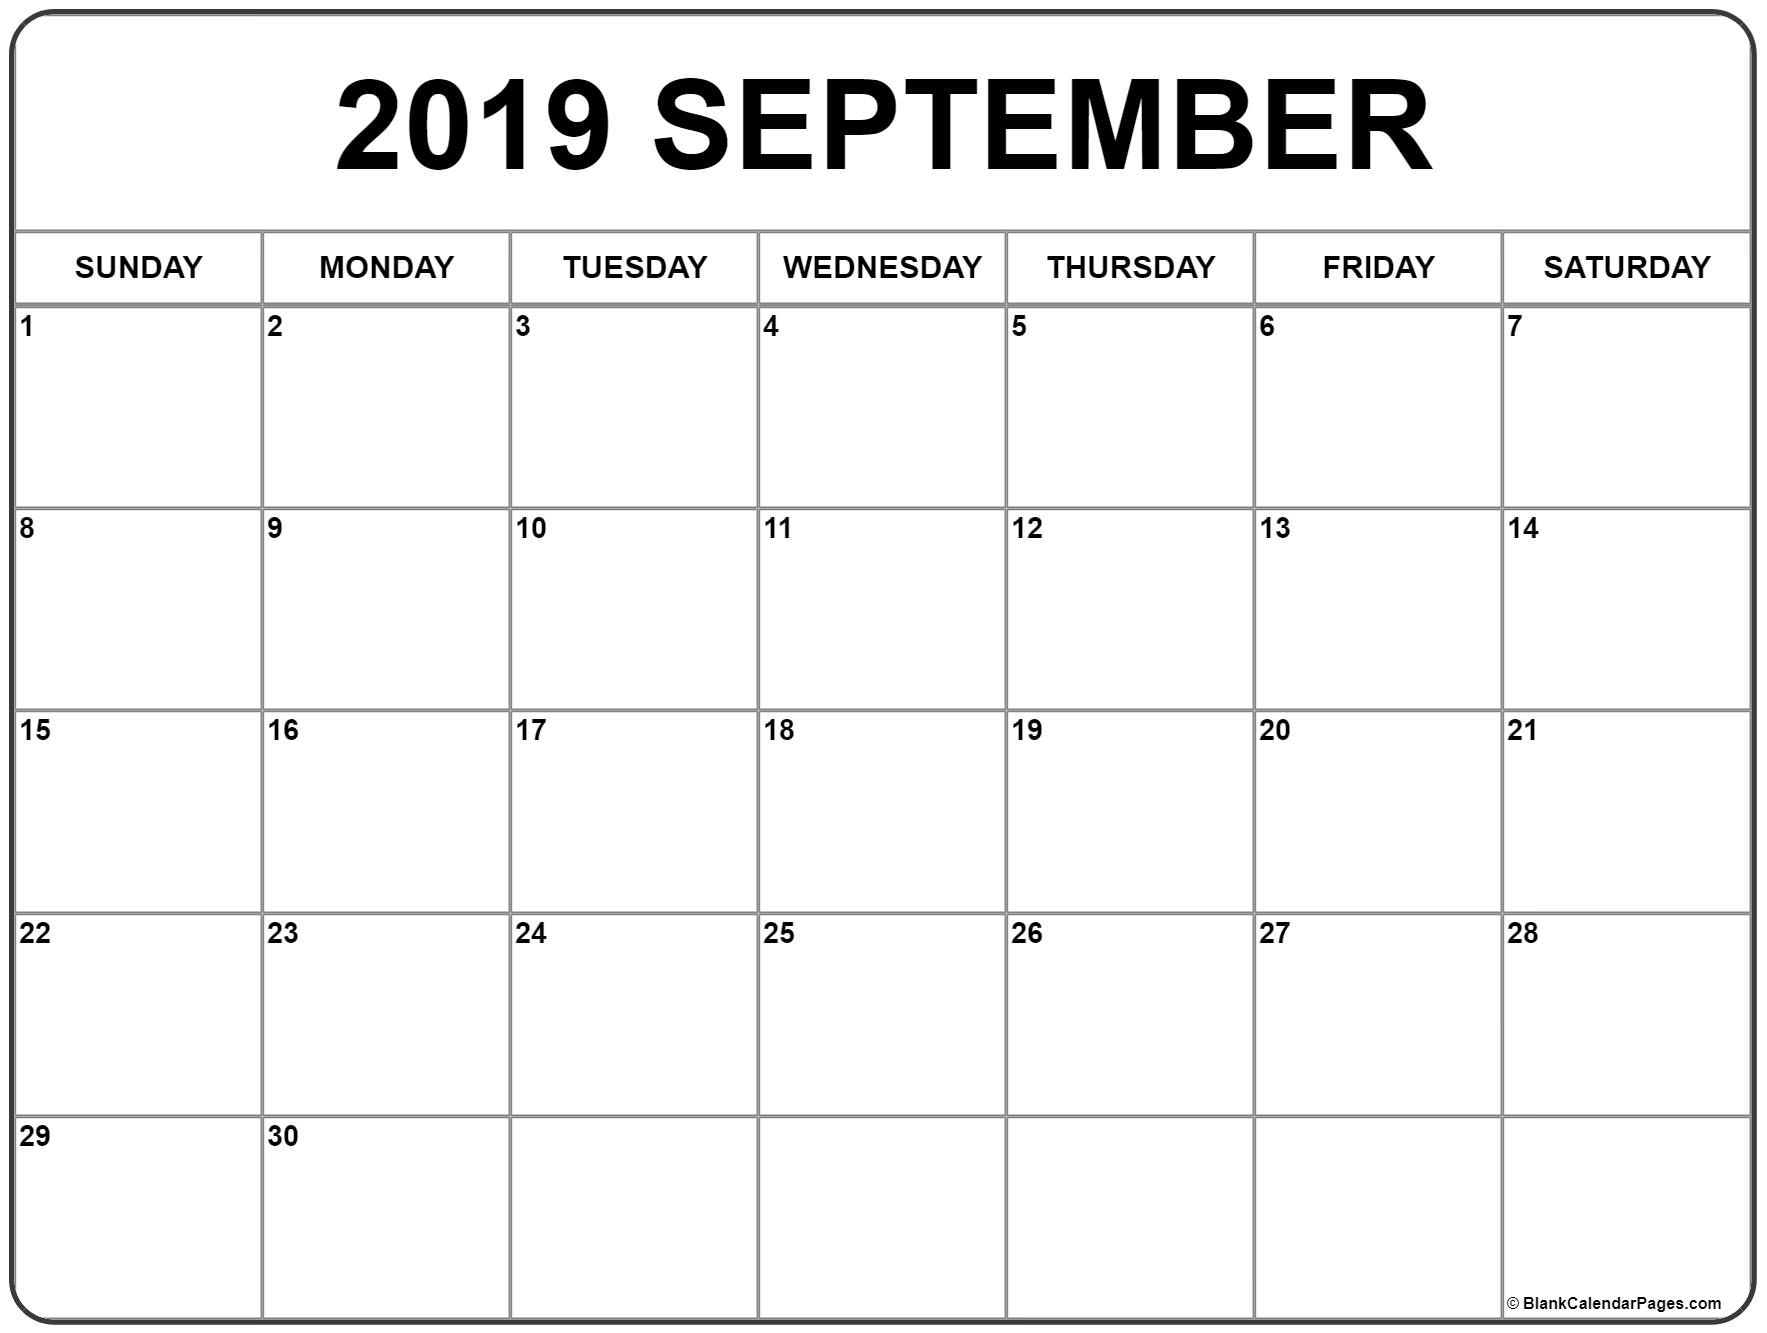 September 2019 Calendar | Free Printable Monthly Calendars